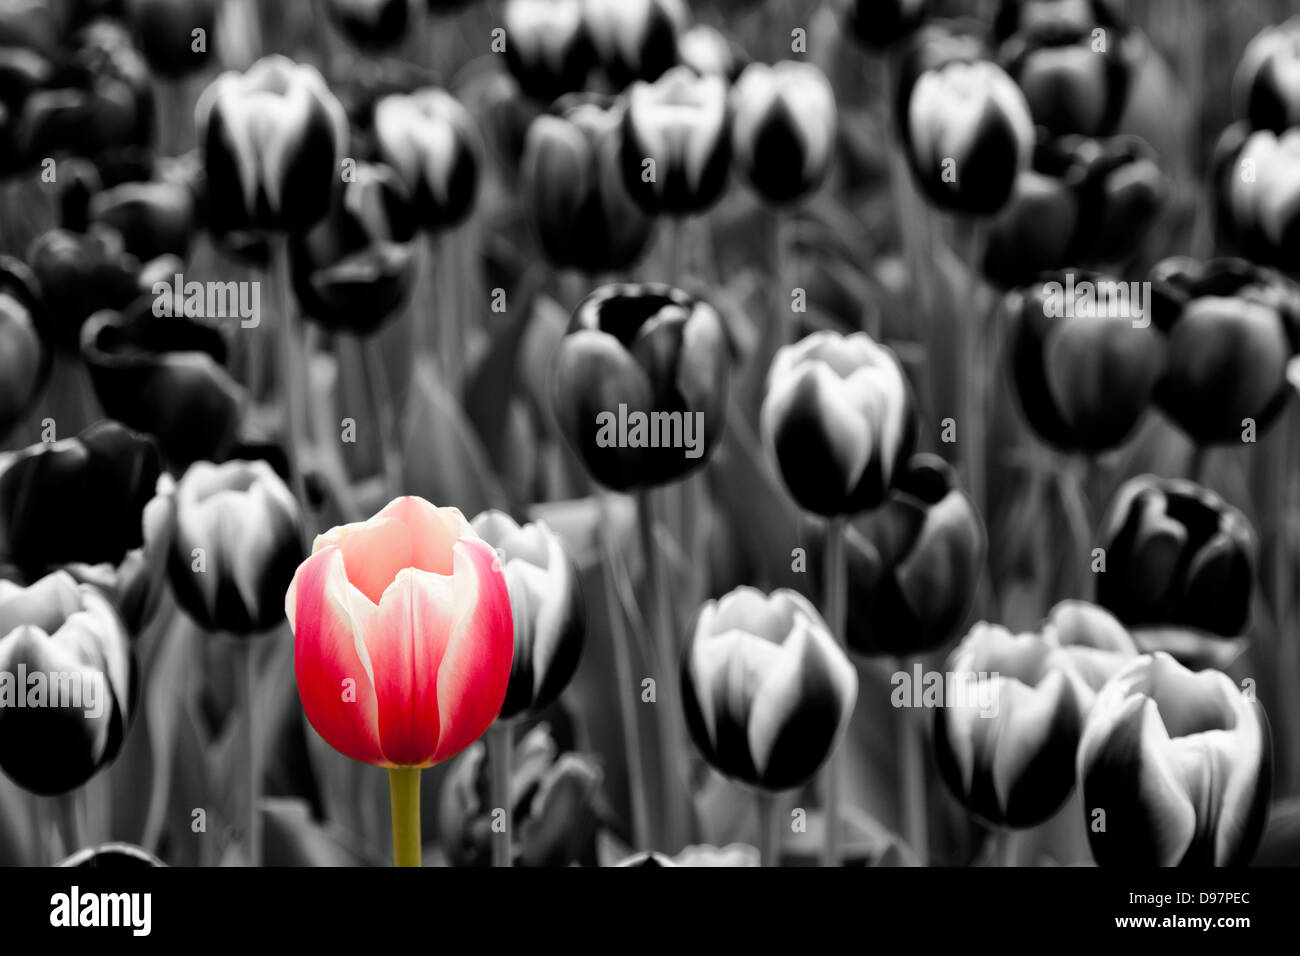 red tulip on monochrome - Stock Image